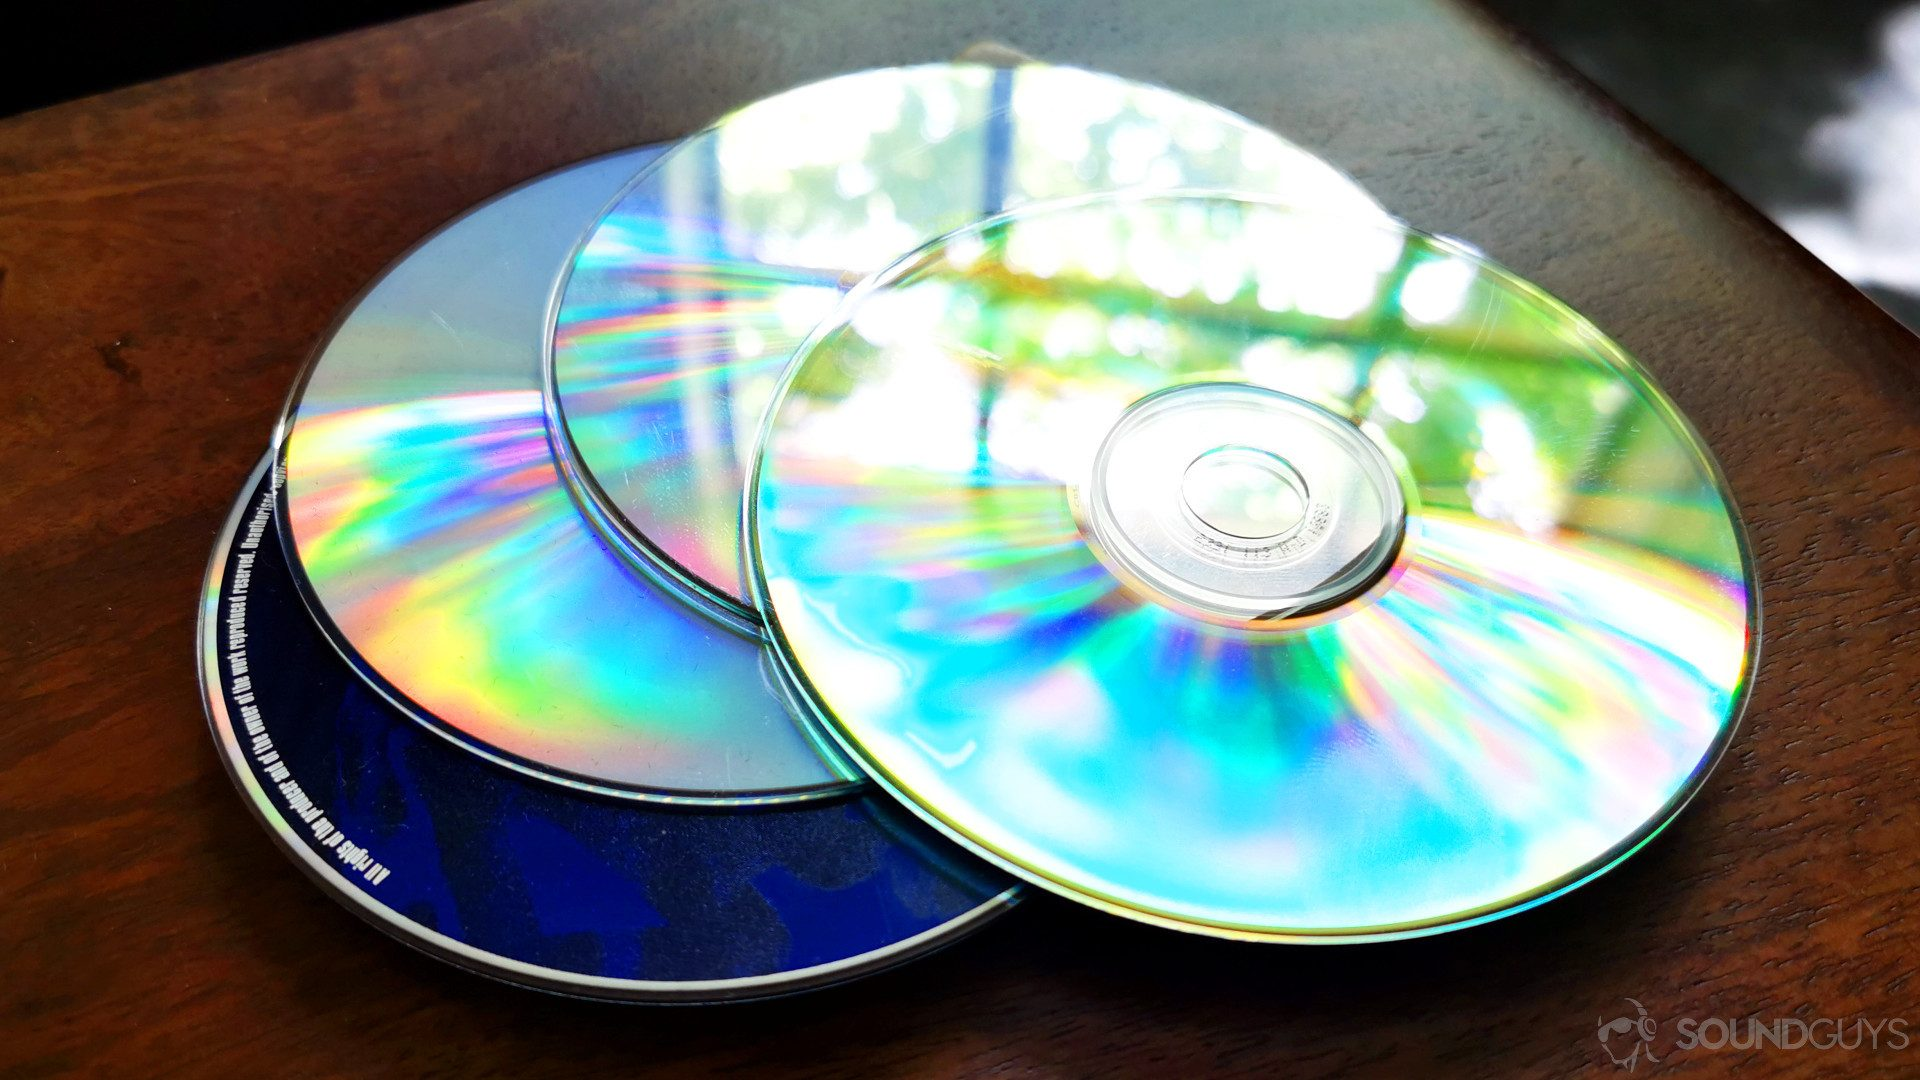 A photo of a stack of CDs on a wooden table - comparing cd quality bit-depth